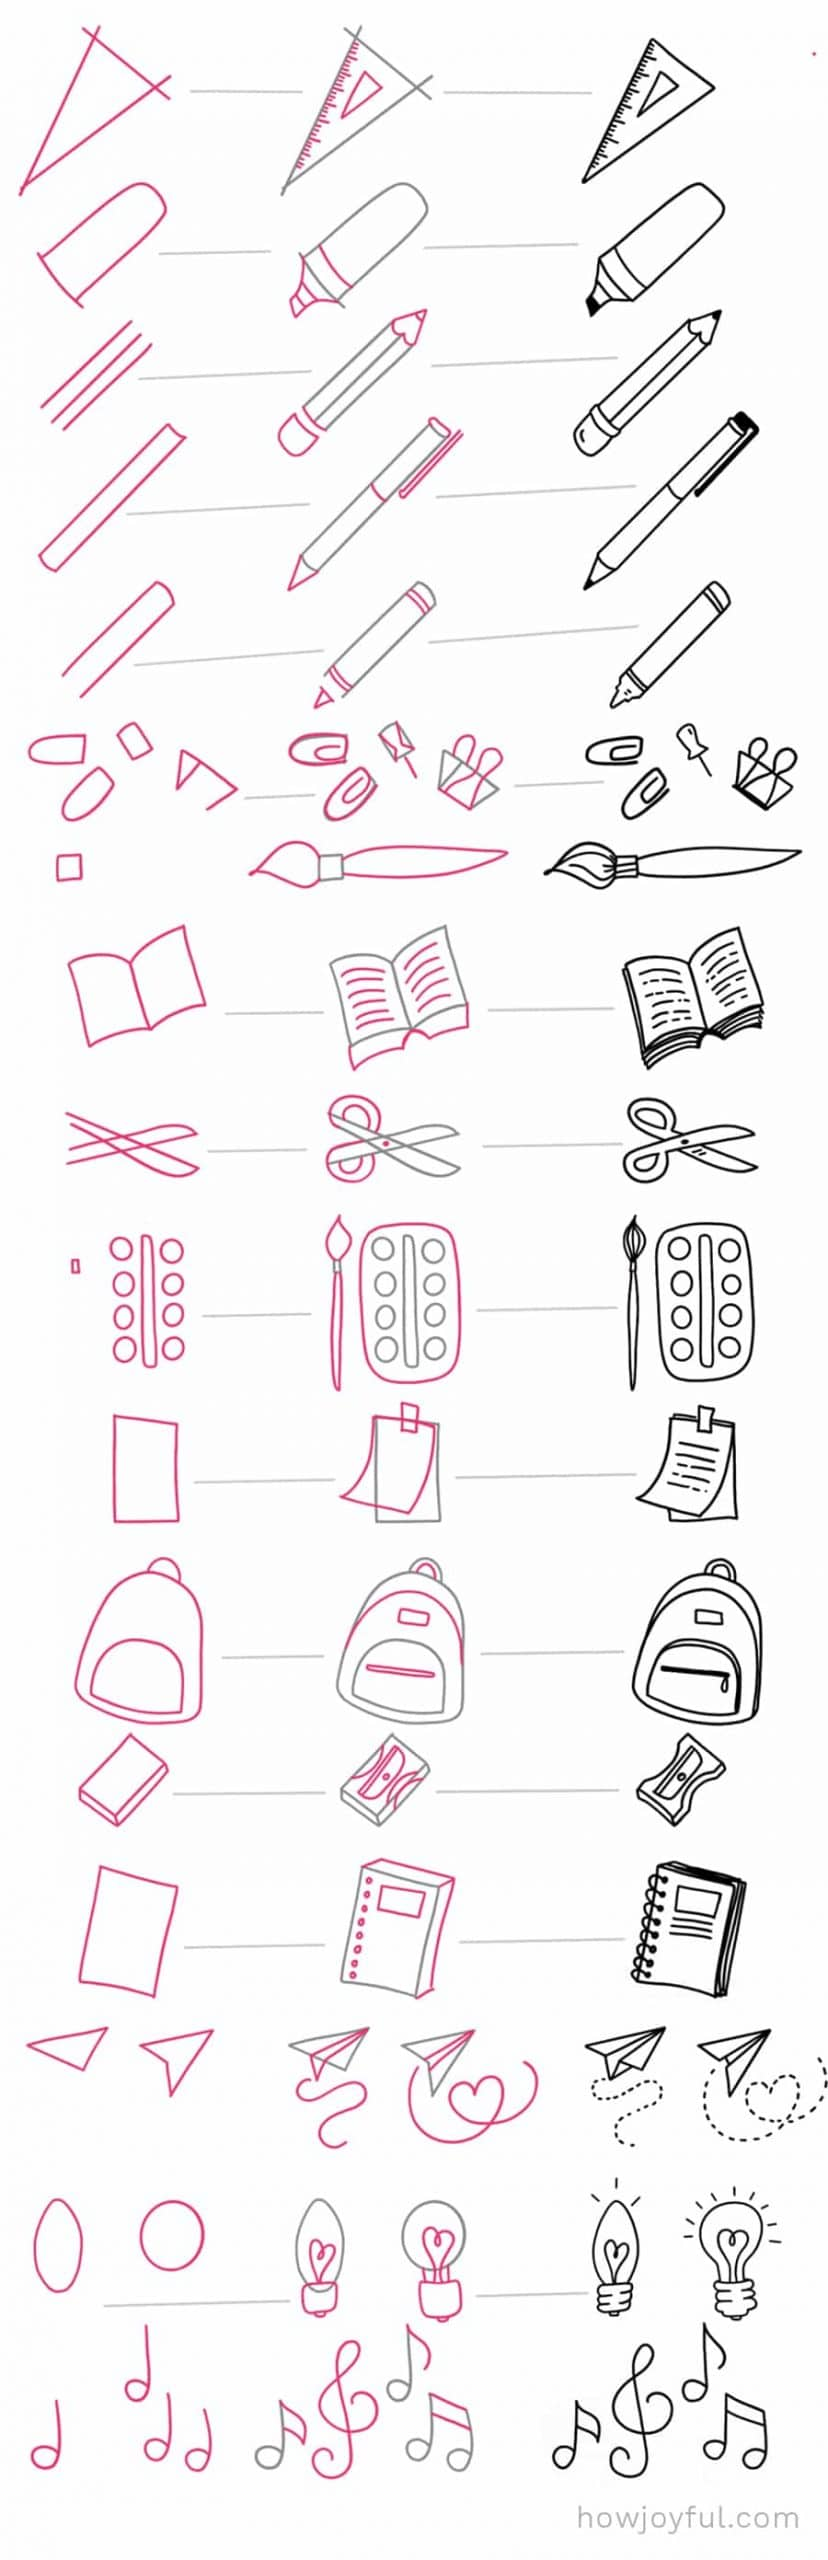 easy school things to draw